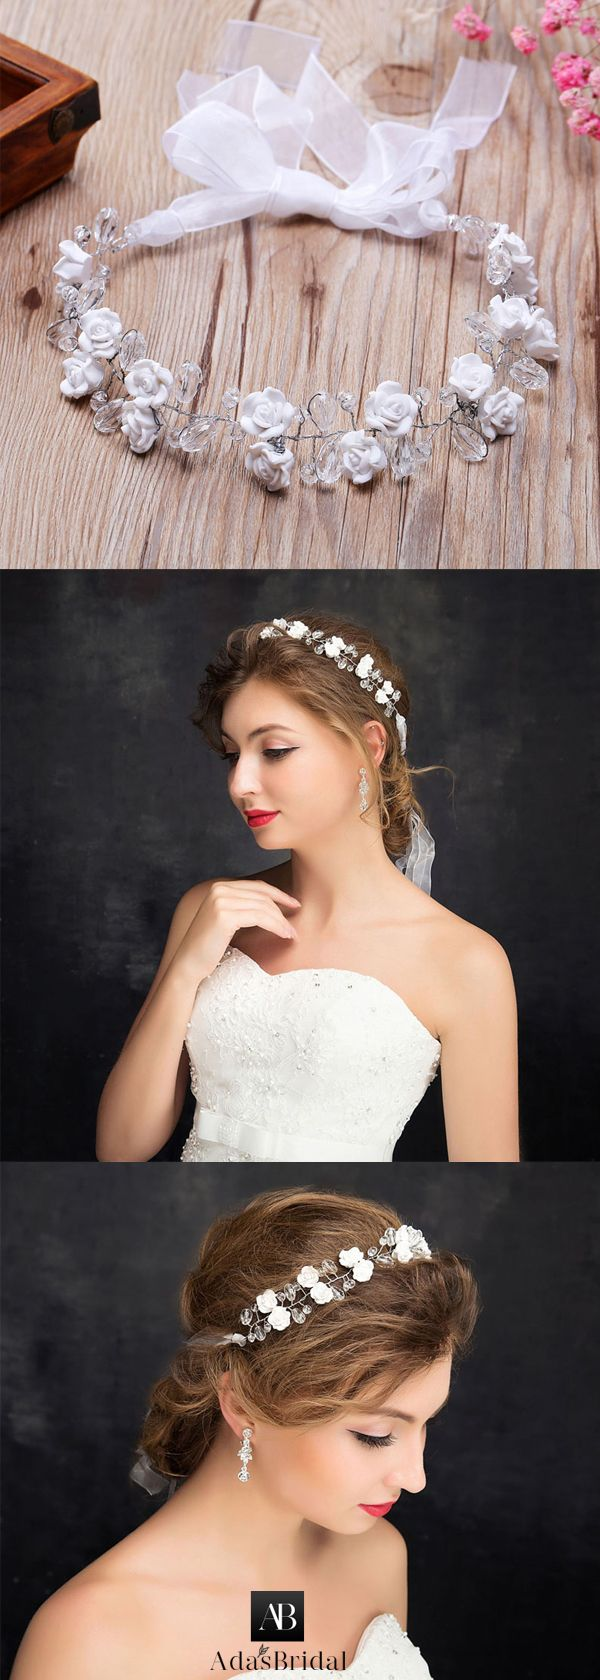 Attractive Alloy Wedding Hair Ornaments With Flowers & Rhinestones